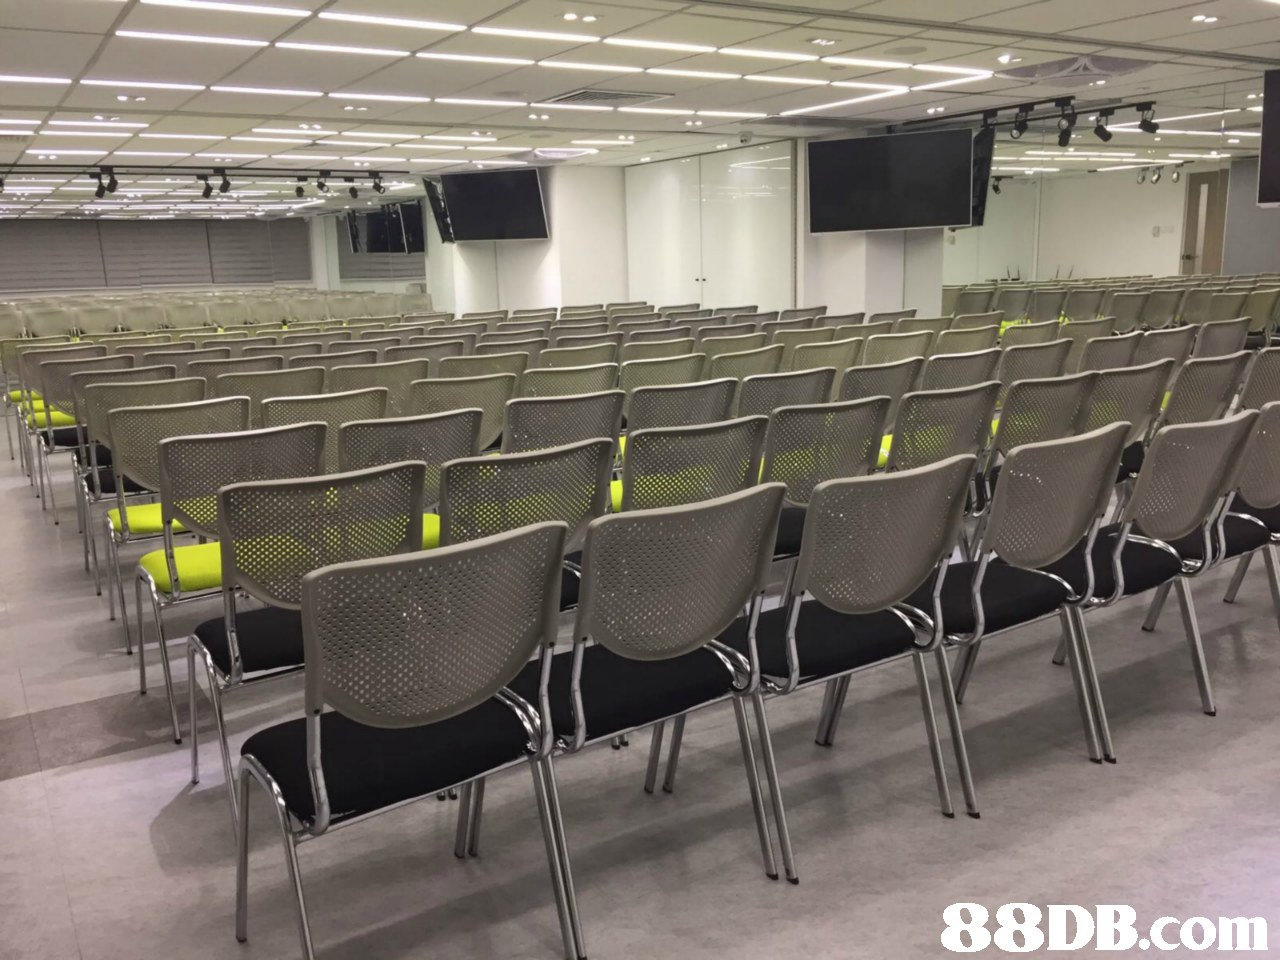 88DB.com  auditorium